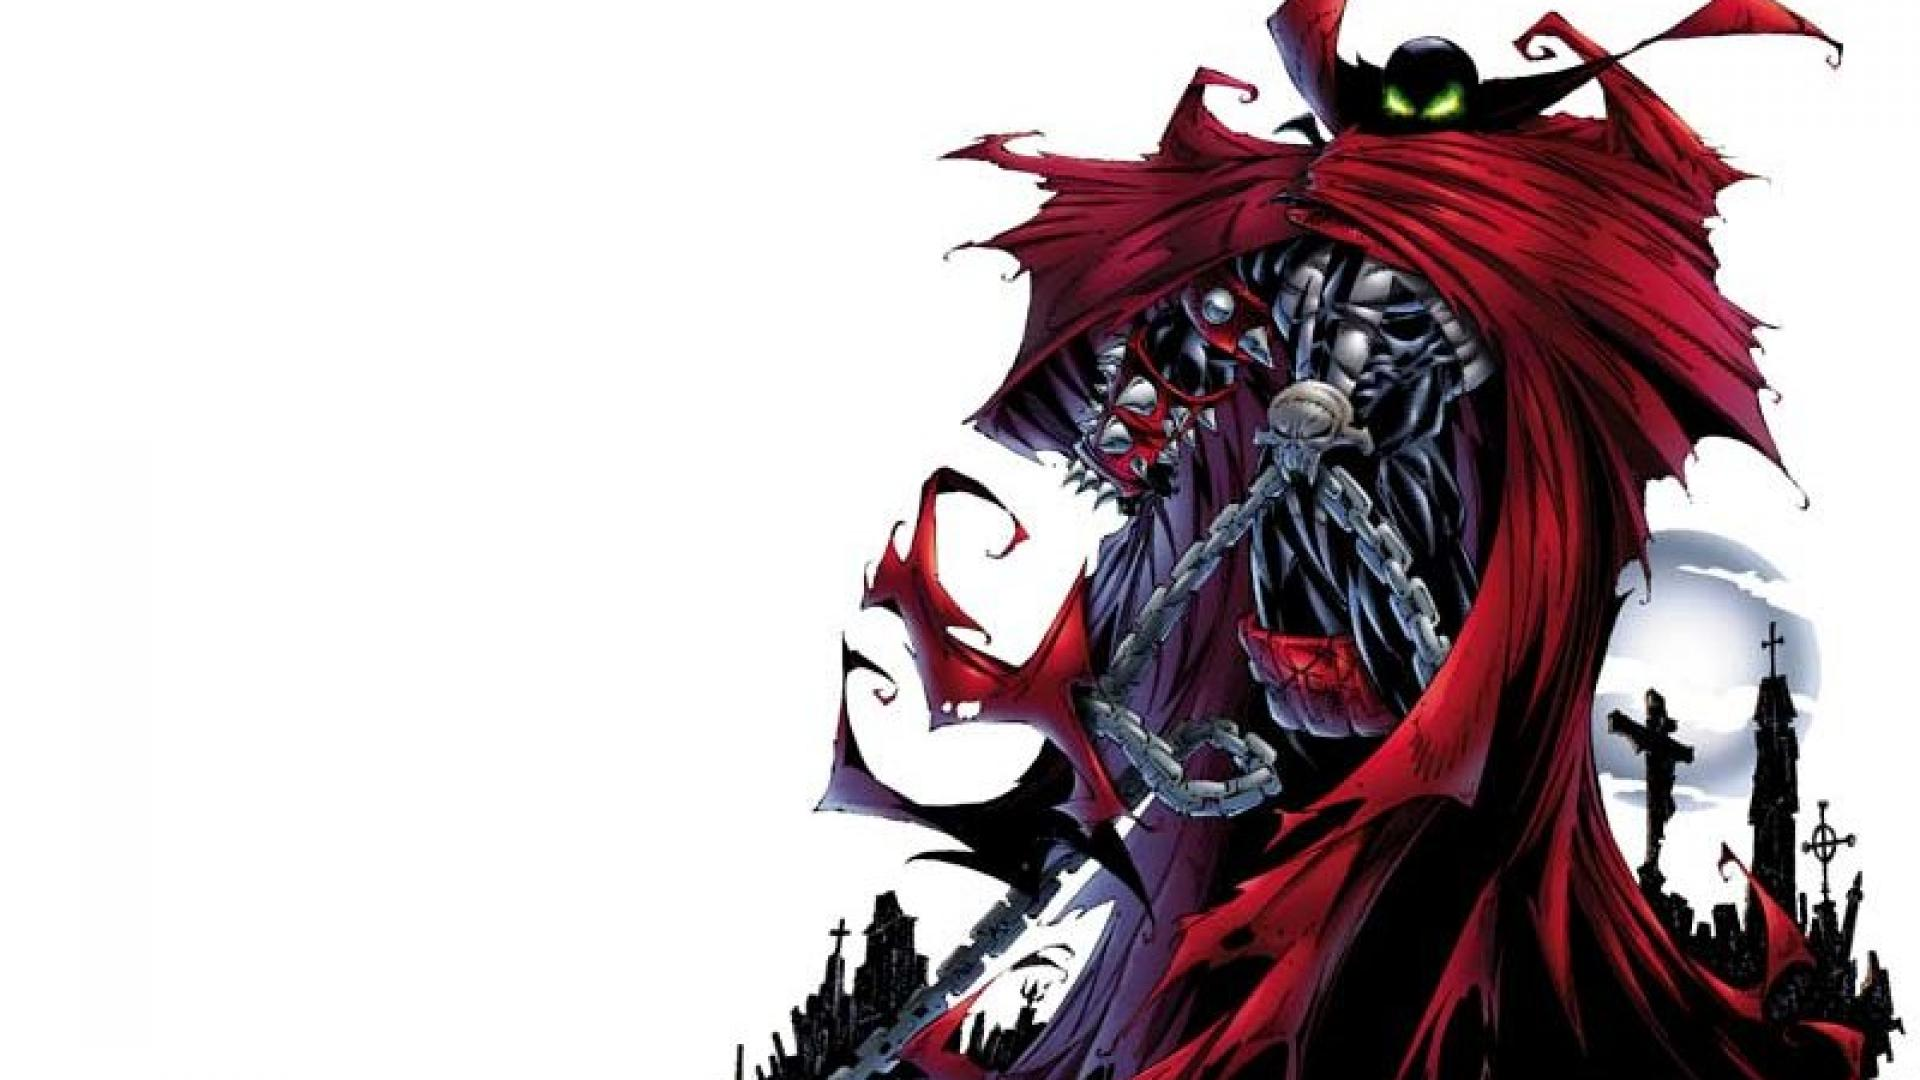 spawn wallpapers 1920x1080 - photo #37